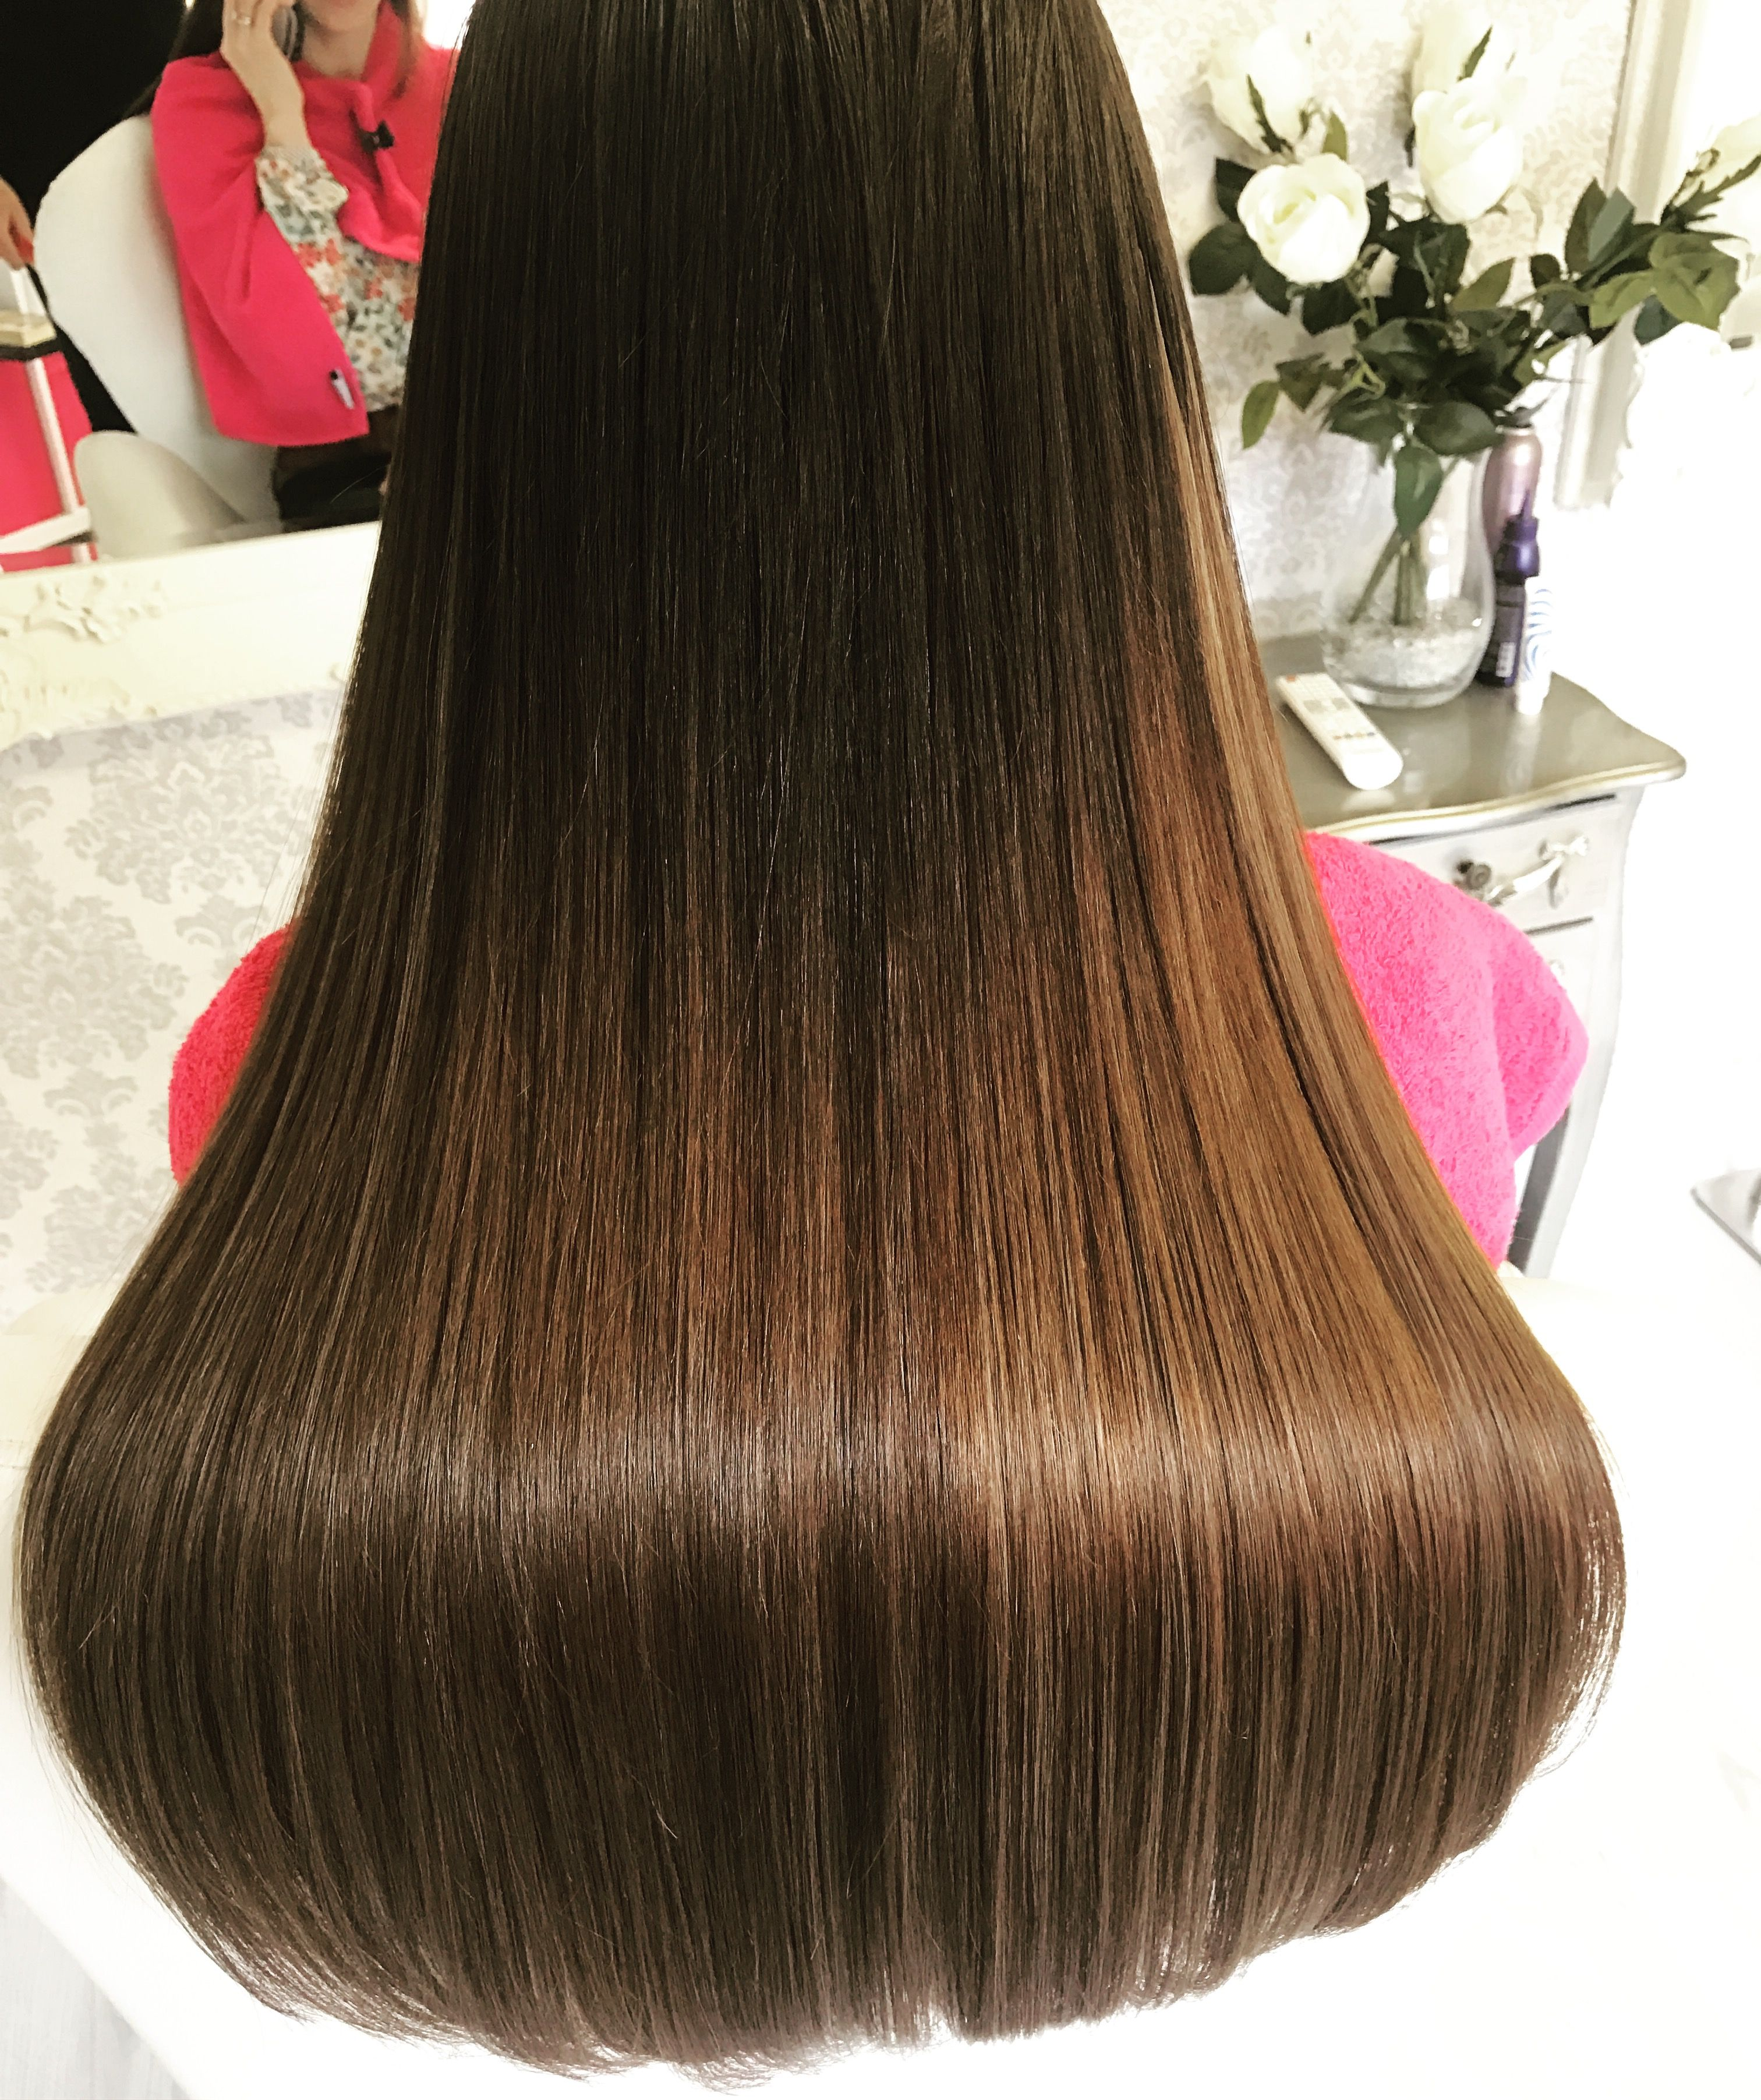 Perfect Blended Hair Extensions By Mychellecaroline Hair